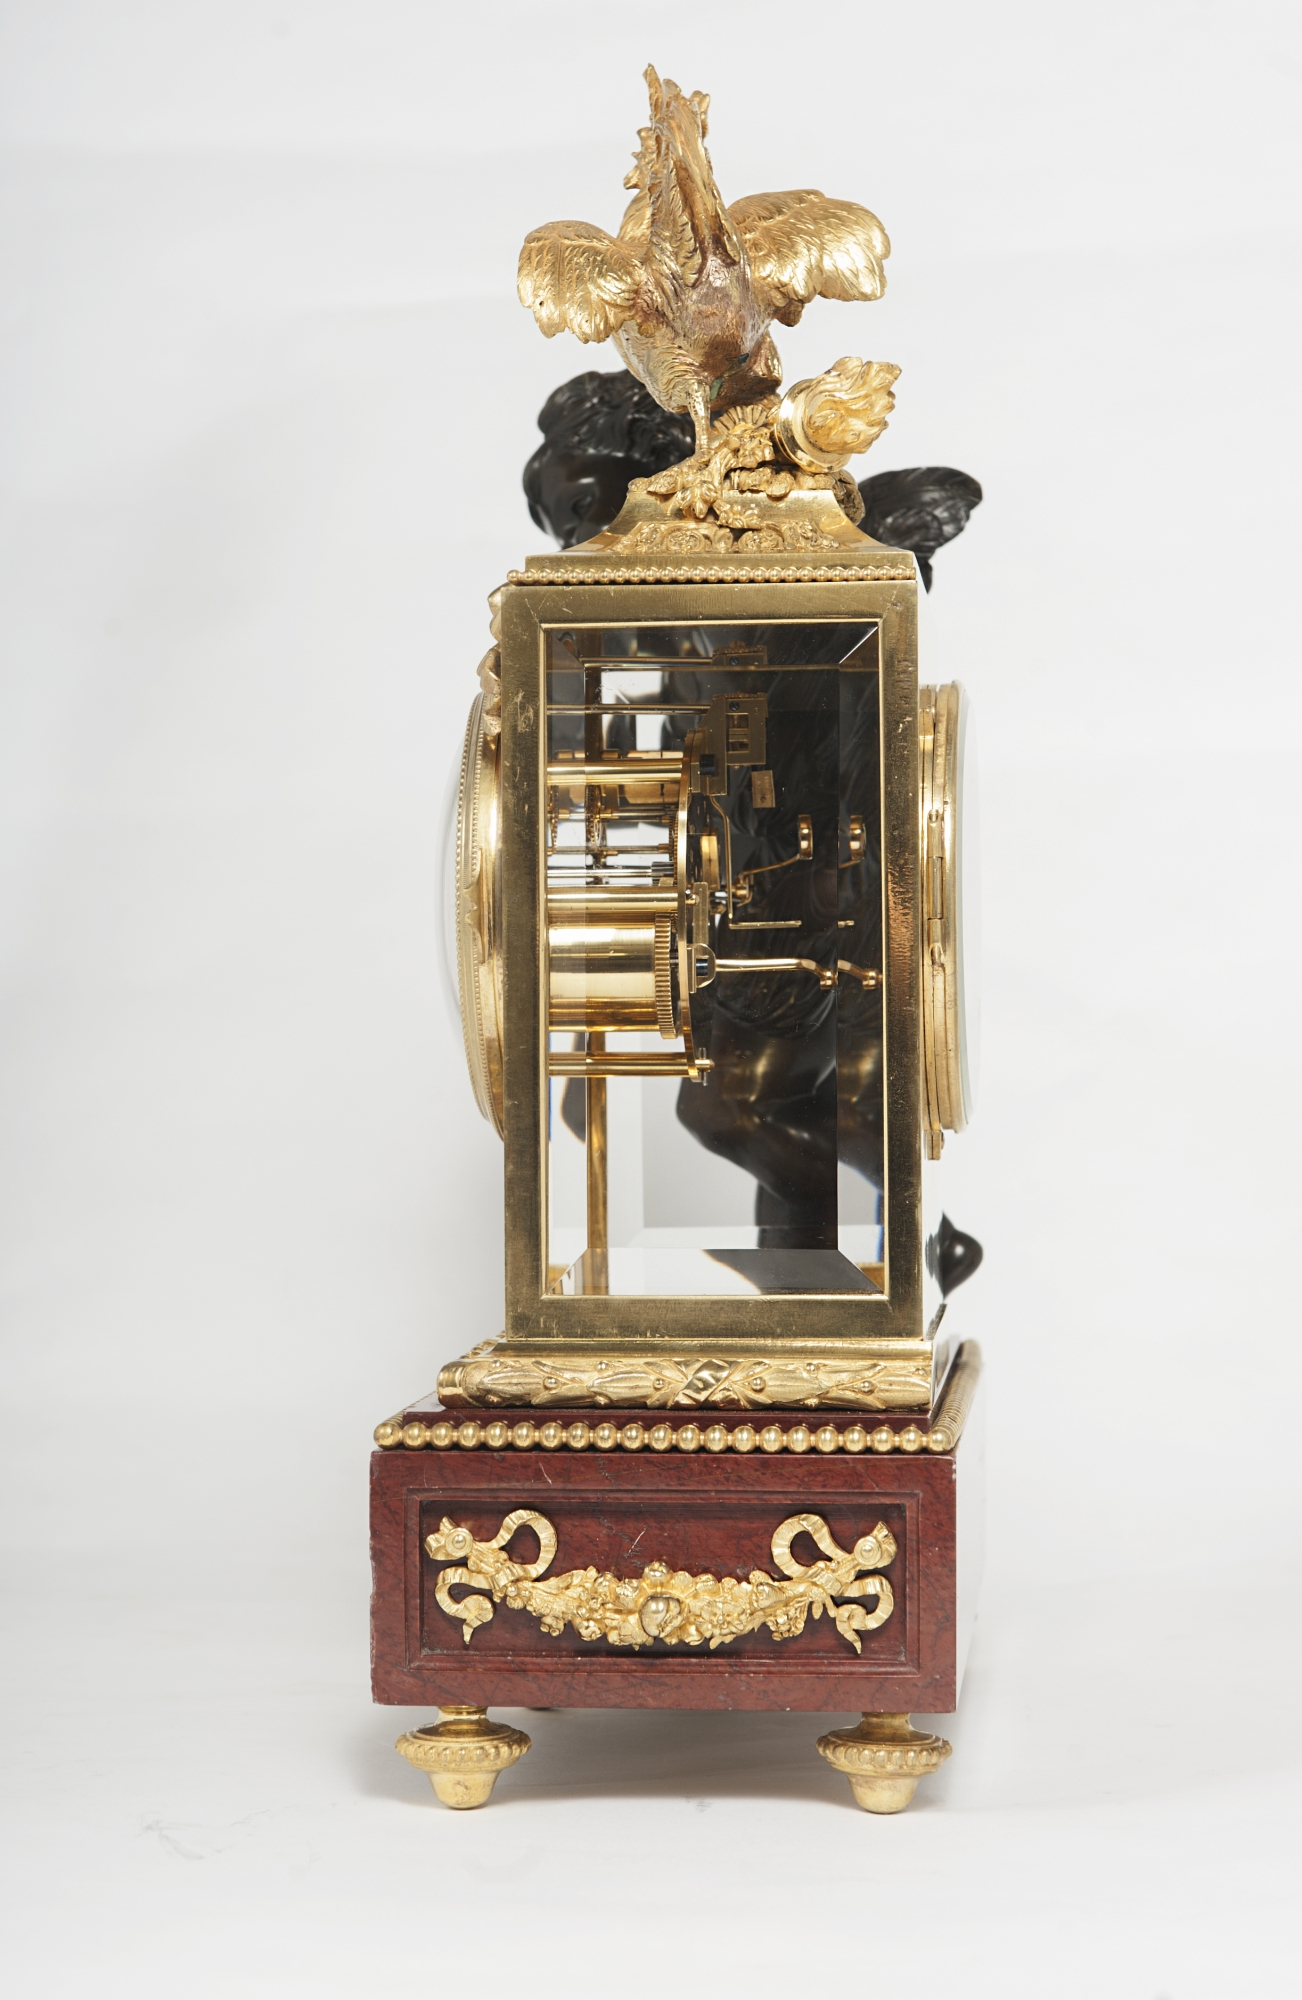 A Good 19th Century Decorative Three Piece Ormolu Clock